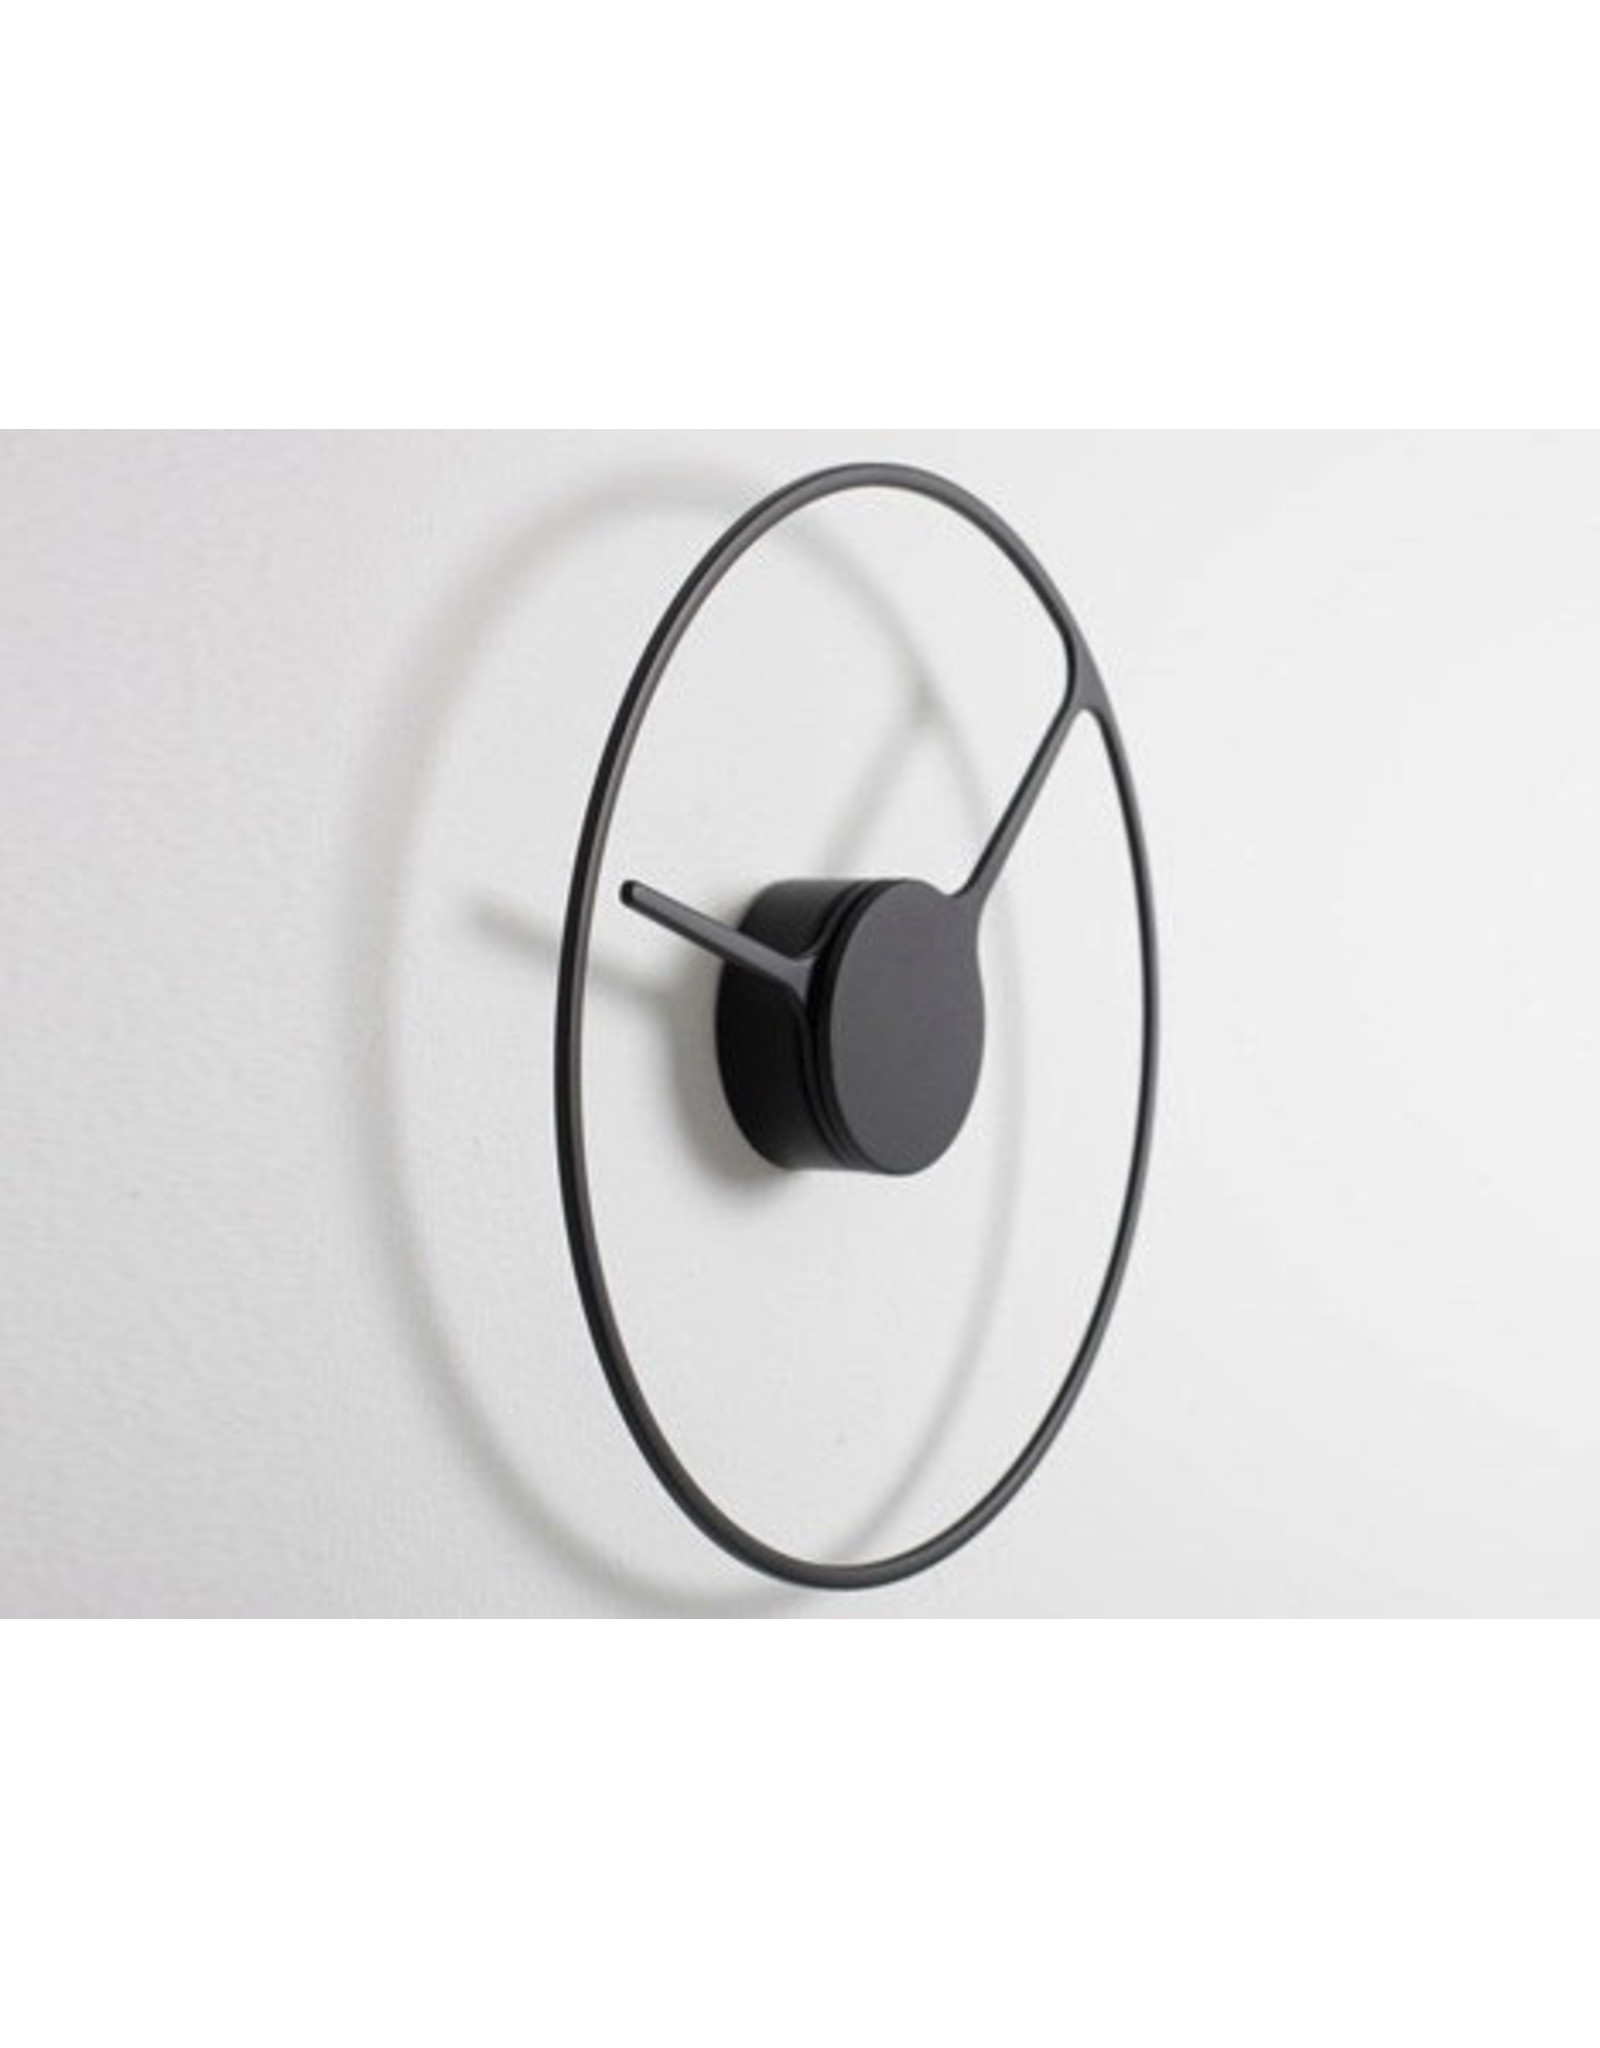 Stelton STELTON TIME WALL CLOCK 22CM BLACK